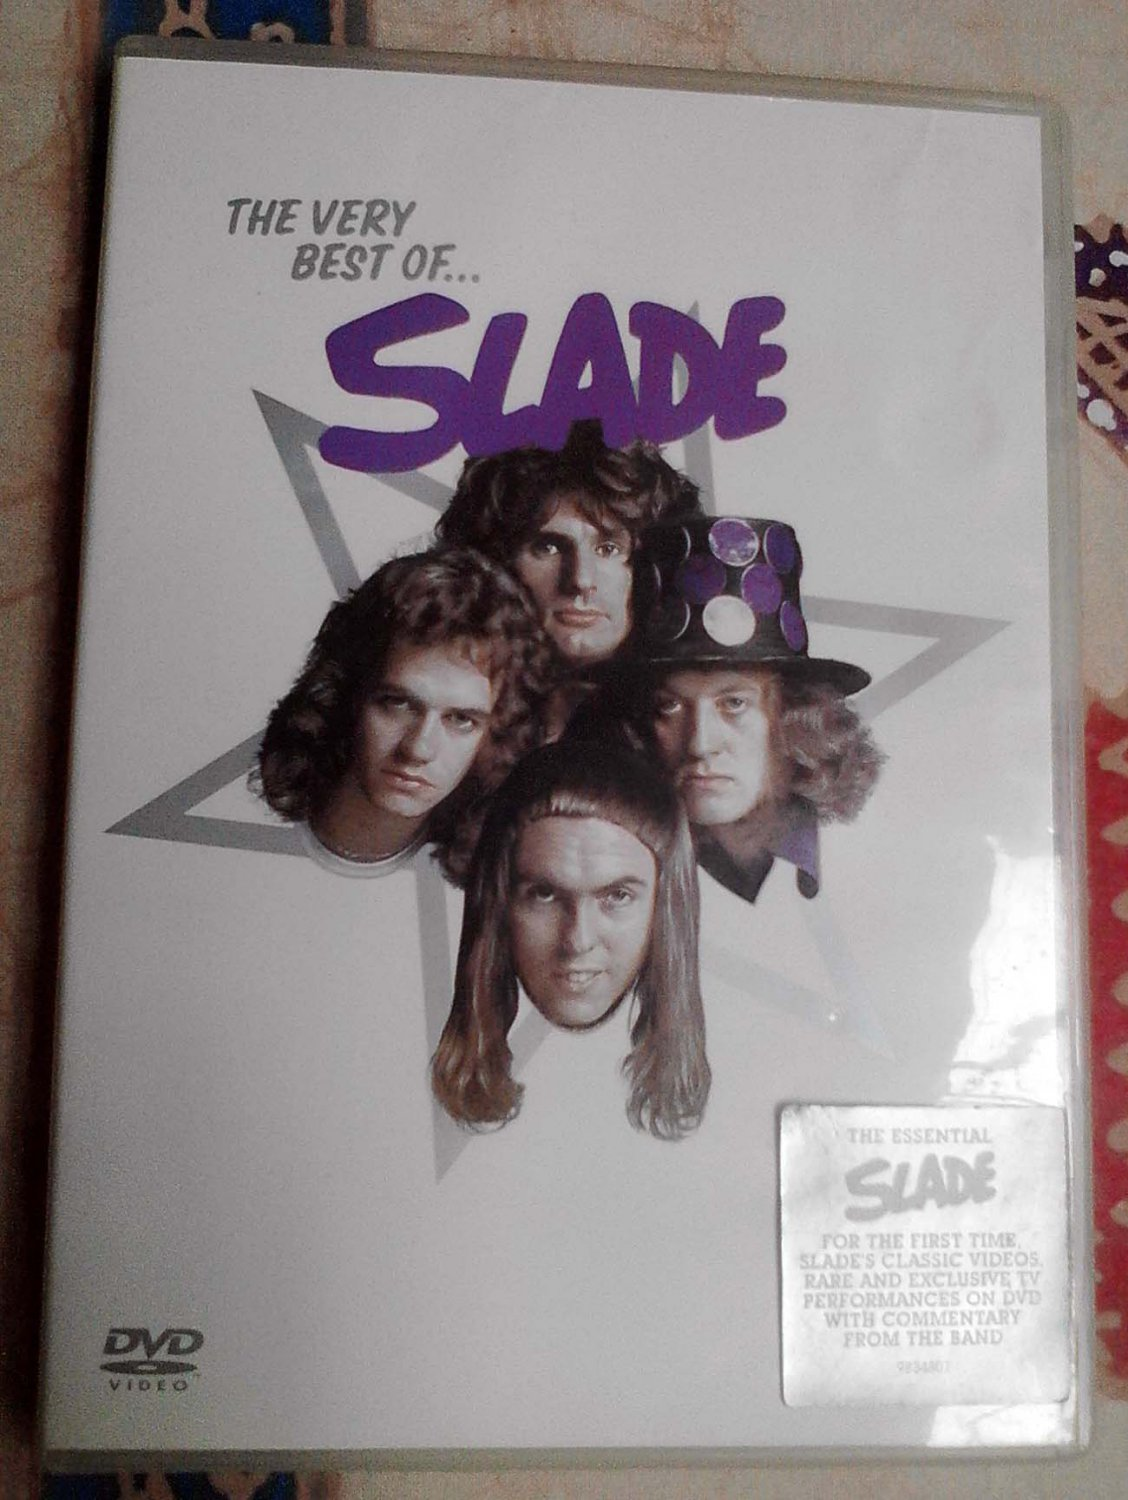 Slade The Very Best Of... DVD